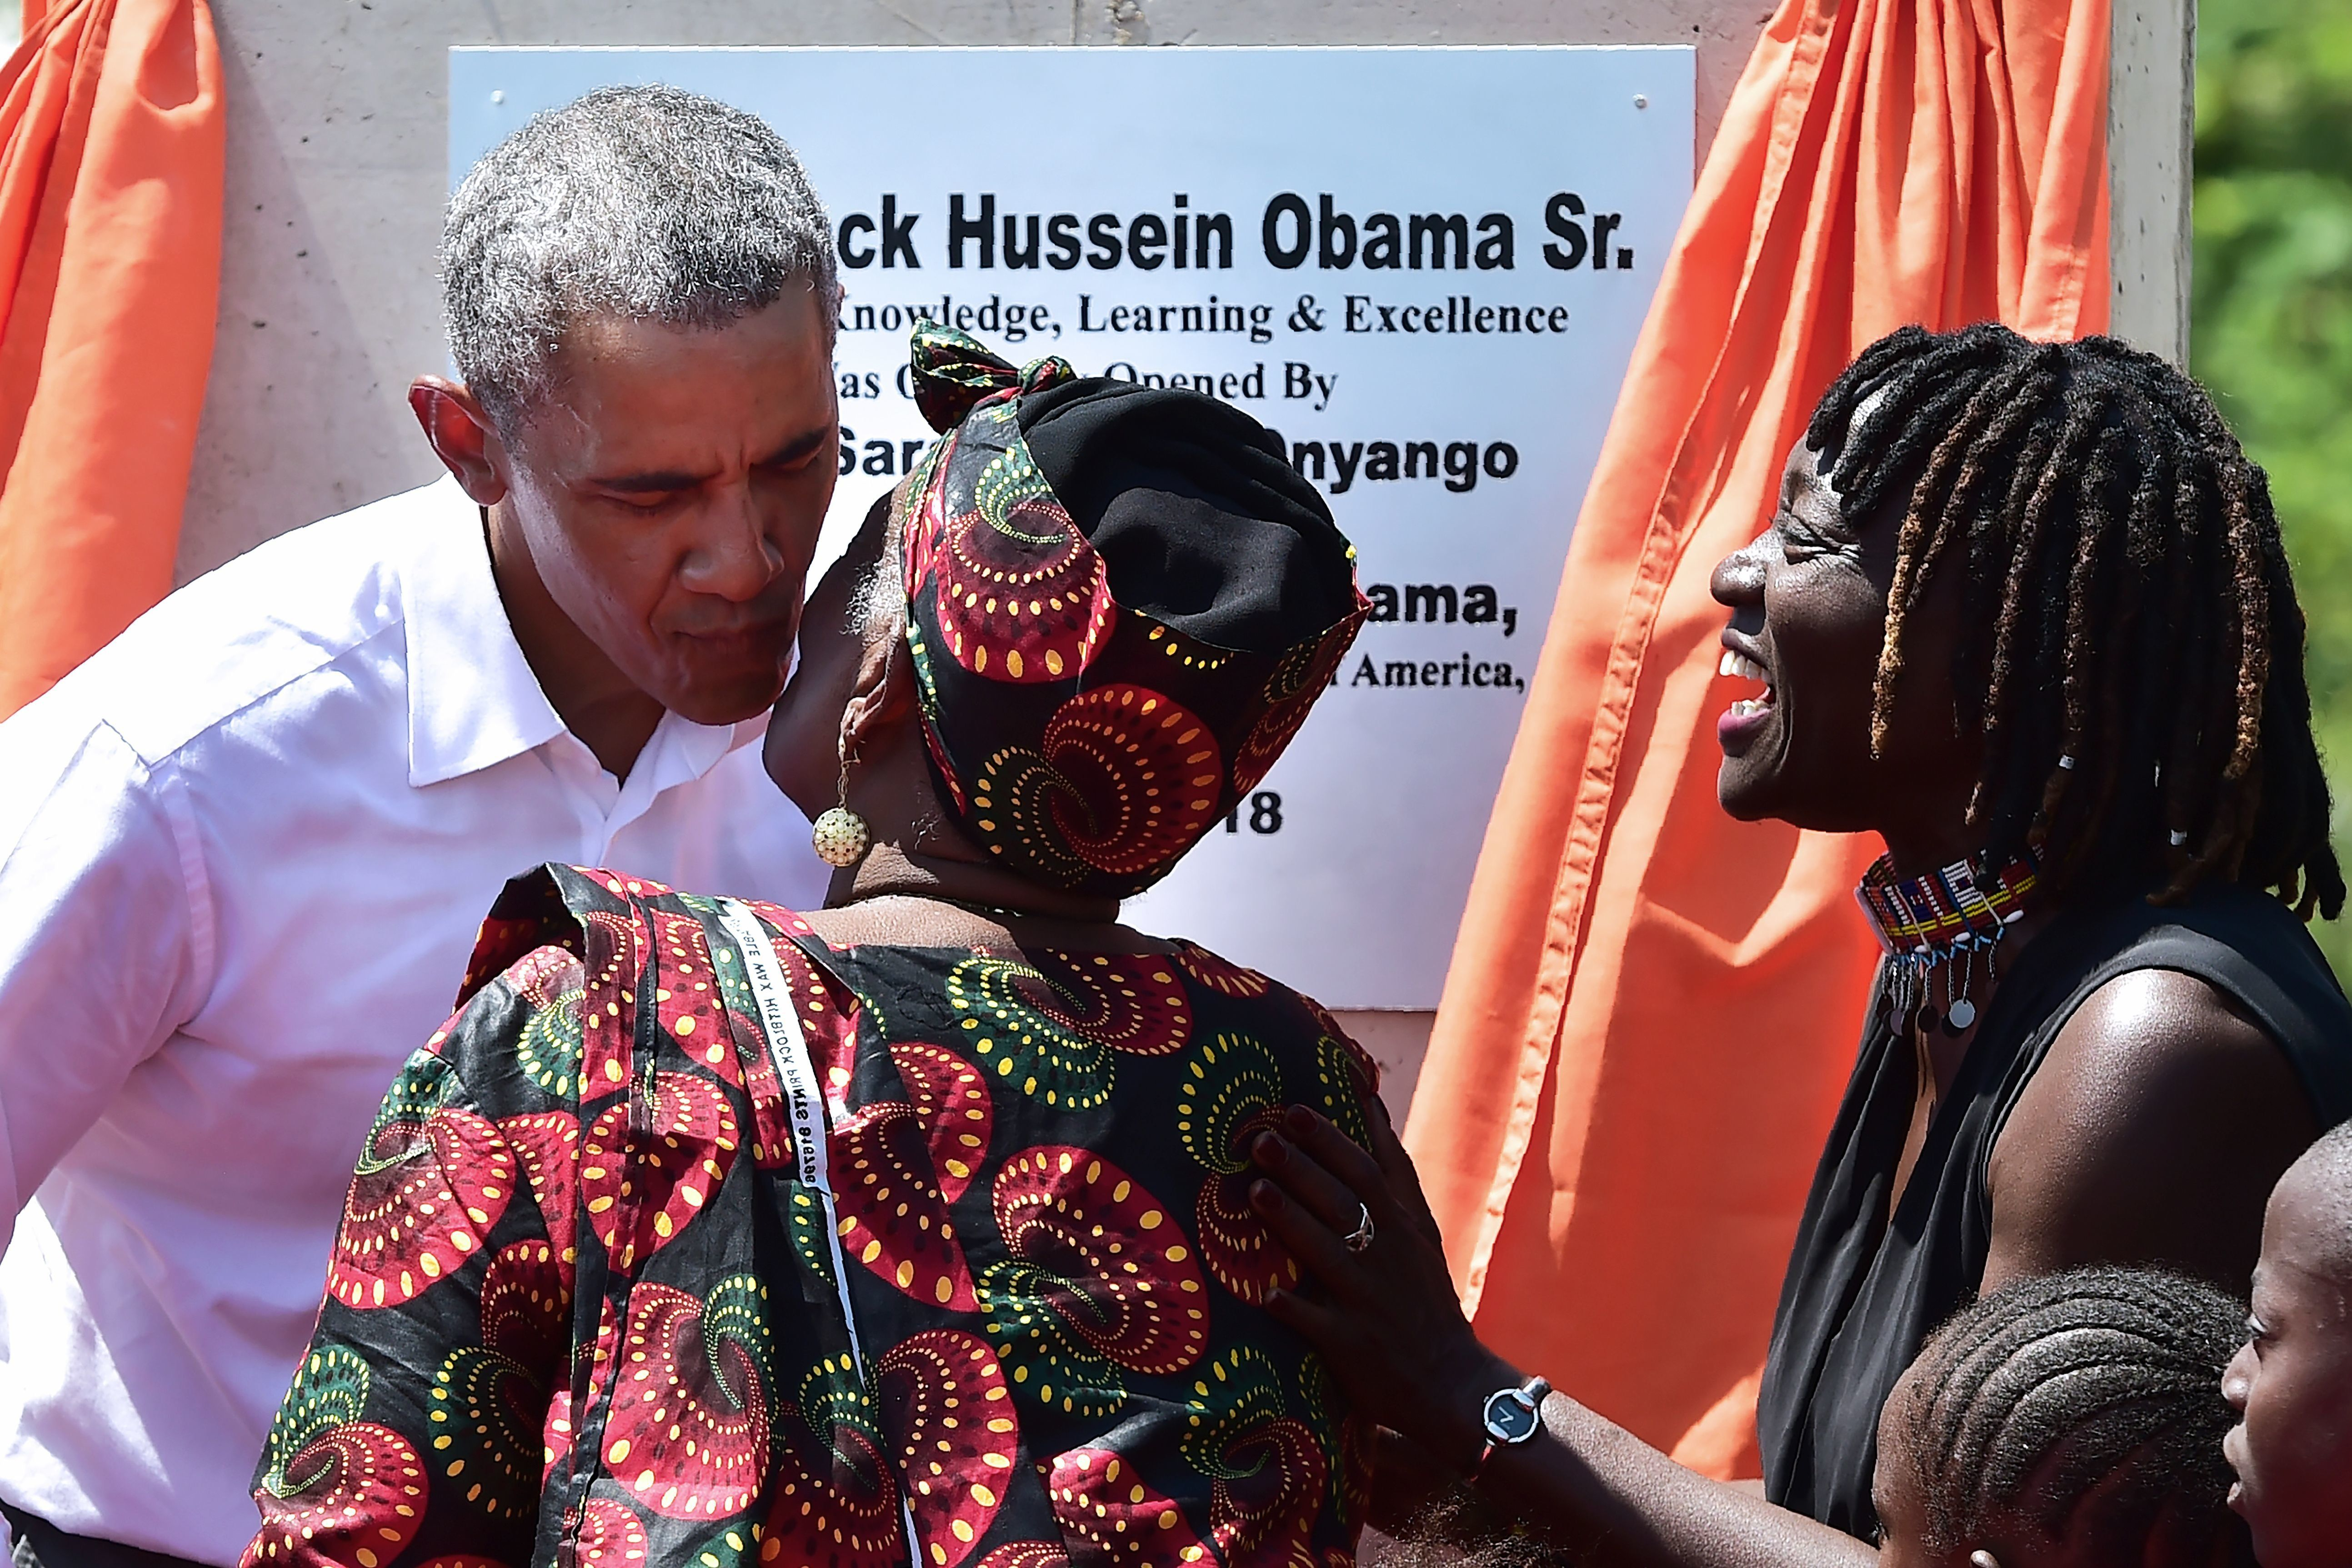 Former US President, Barack Obama (C) with his step-grandmother Sarah (2R) and half-sister, Auma (L) arrive to unveil a plaque on July 16, 2018 during the opening of the Sauti Kuu Resource Centre, founded by his half-sister, Auma Obama at Kogelo in Siaya county, western Kenya. - Obama is in the east african nation for the first time since he left the US presidency and met with President Uhuru Kenyatta and opposition leader Raila Odinga in Nairobi. (Photo by TONY KARUMBA / AFP)        (Photo credit should read TONY KARUMBA/AFP/Getty Images)